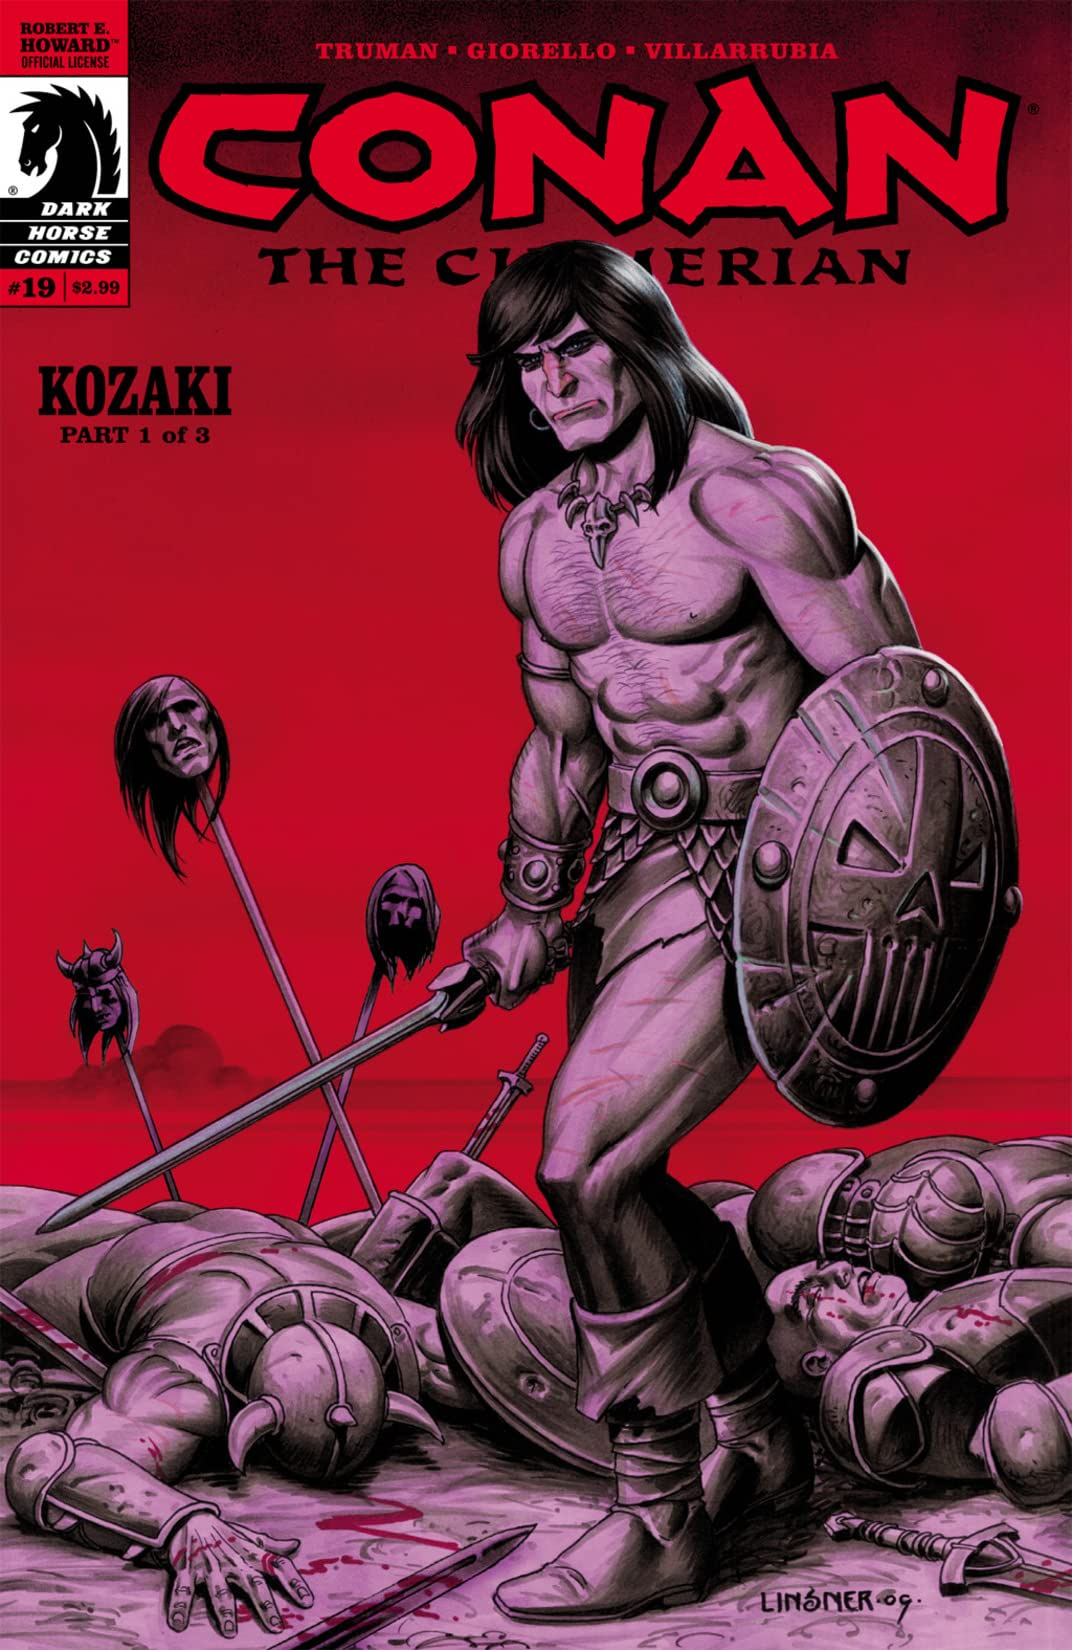 Conan the Cimmerian #19